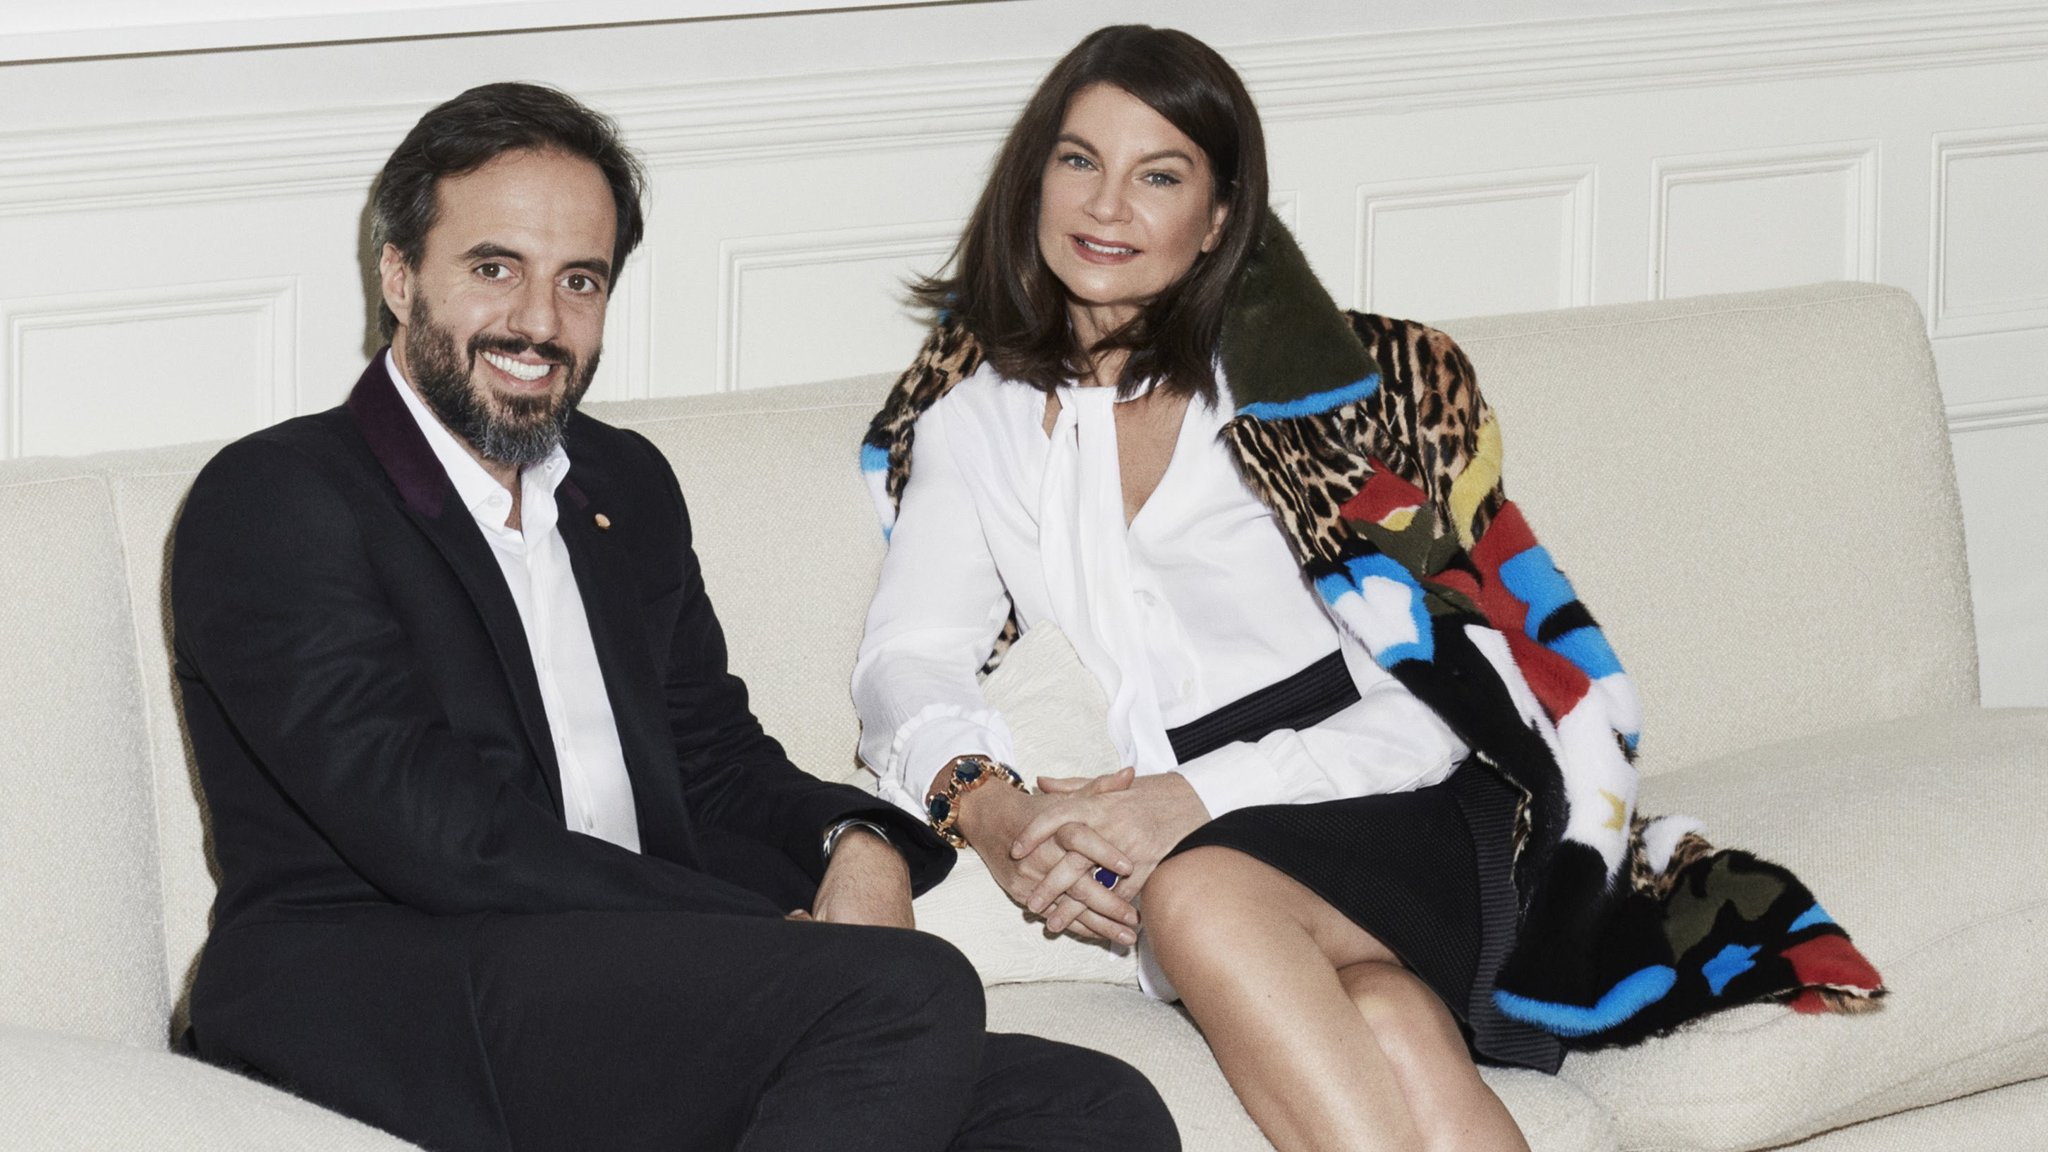 Jose Neves and Natalie Massenet - Farfetch - Women Empowerment - Powerful women in business - Founder of Farfetch natalie massenet Women Empowerment: Net-a-Porter Founder Natalie Massenet b54ee470 fde3 11e6 8d8e a5e3738f9ae4